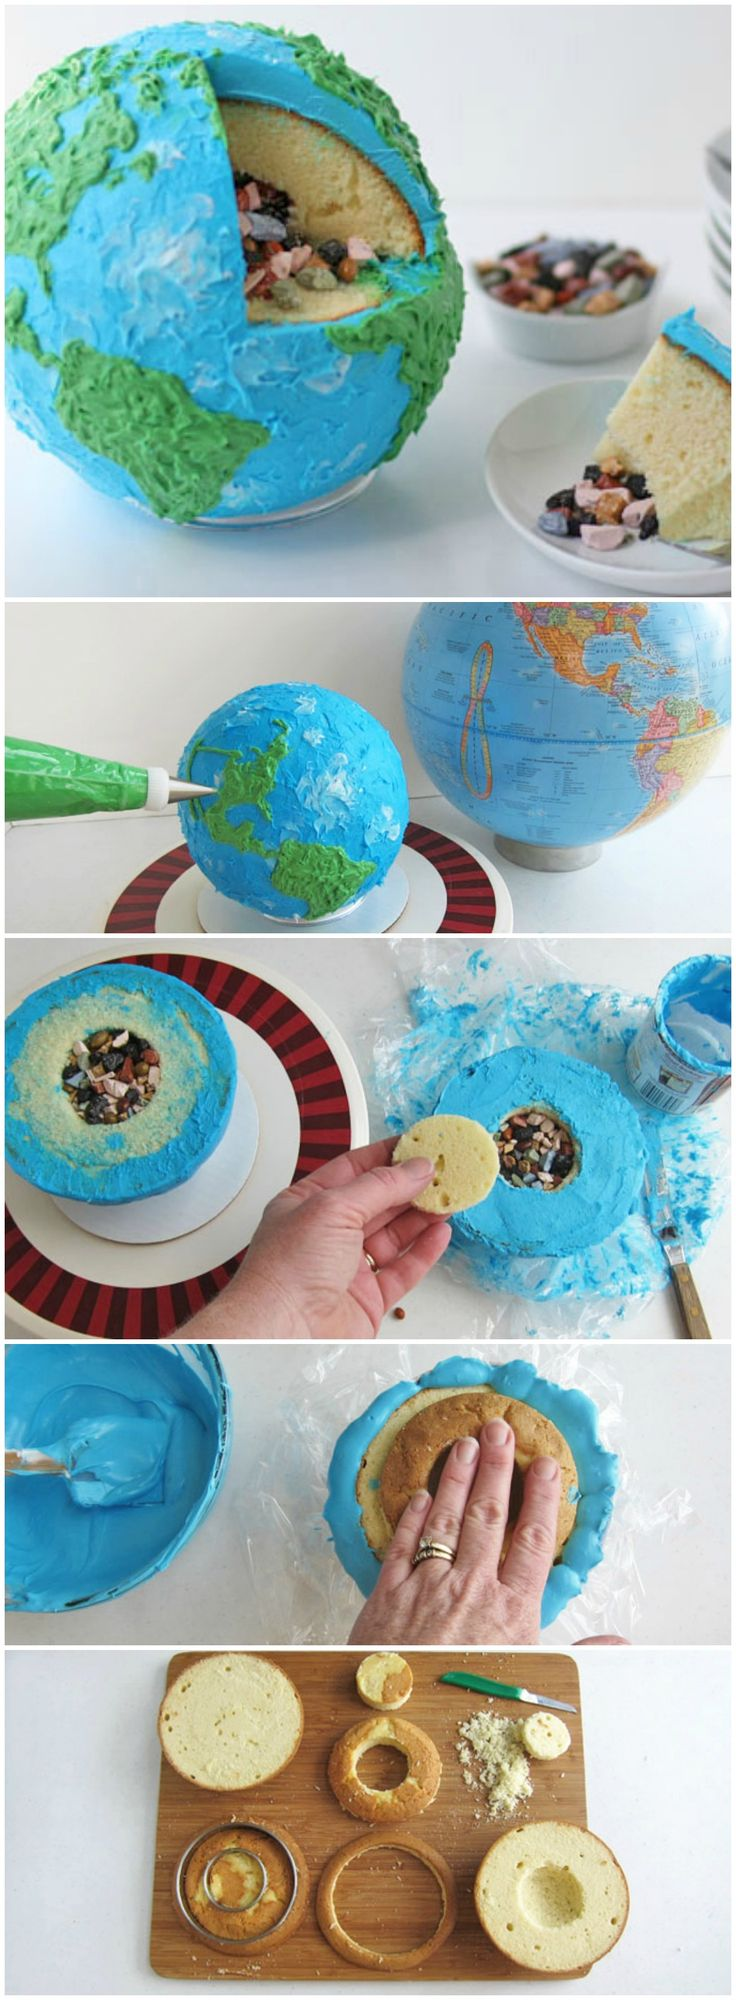 Earth Cake w/ Rock Candy Core #EarthDay